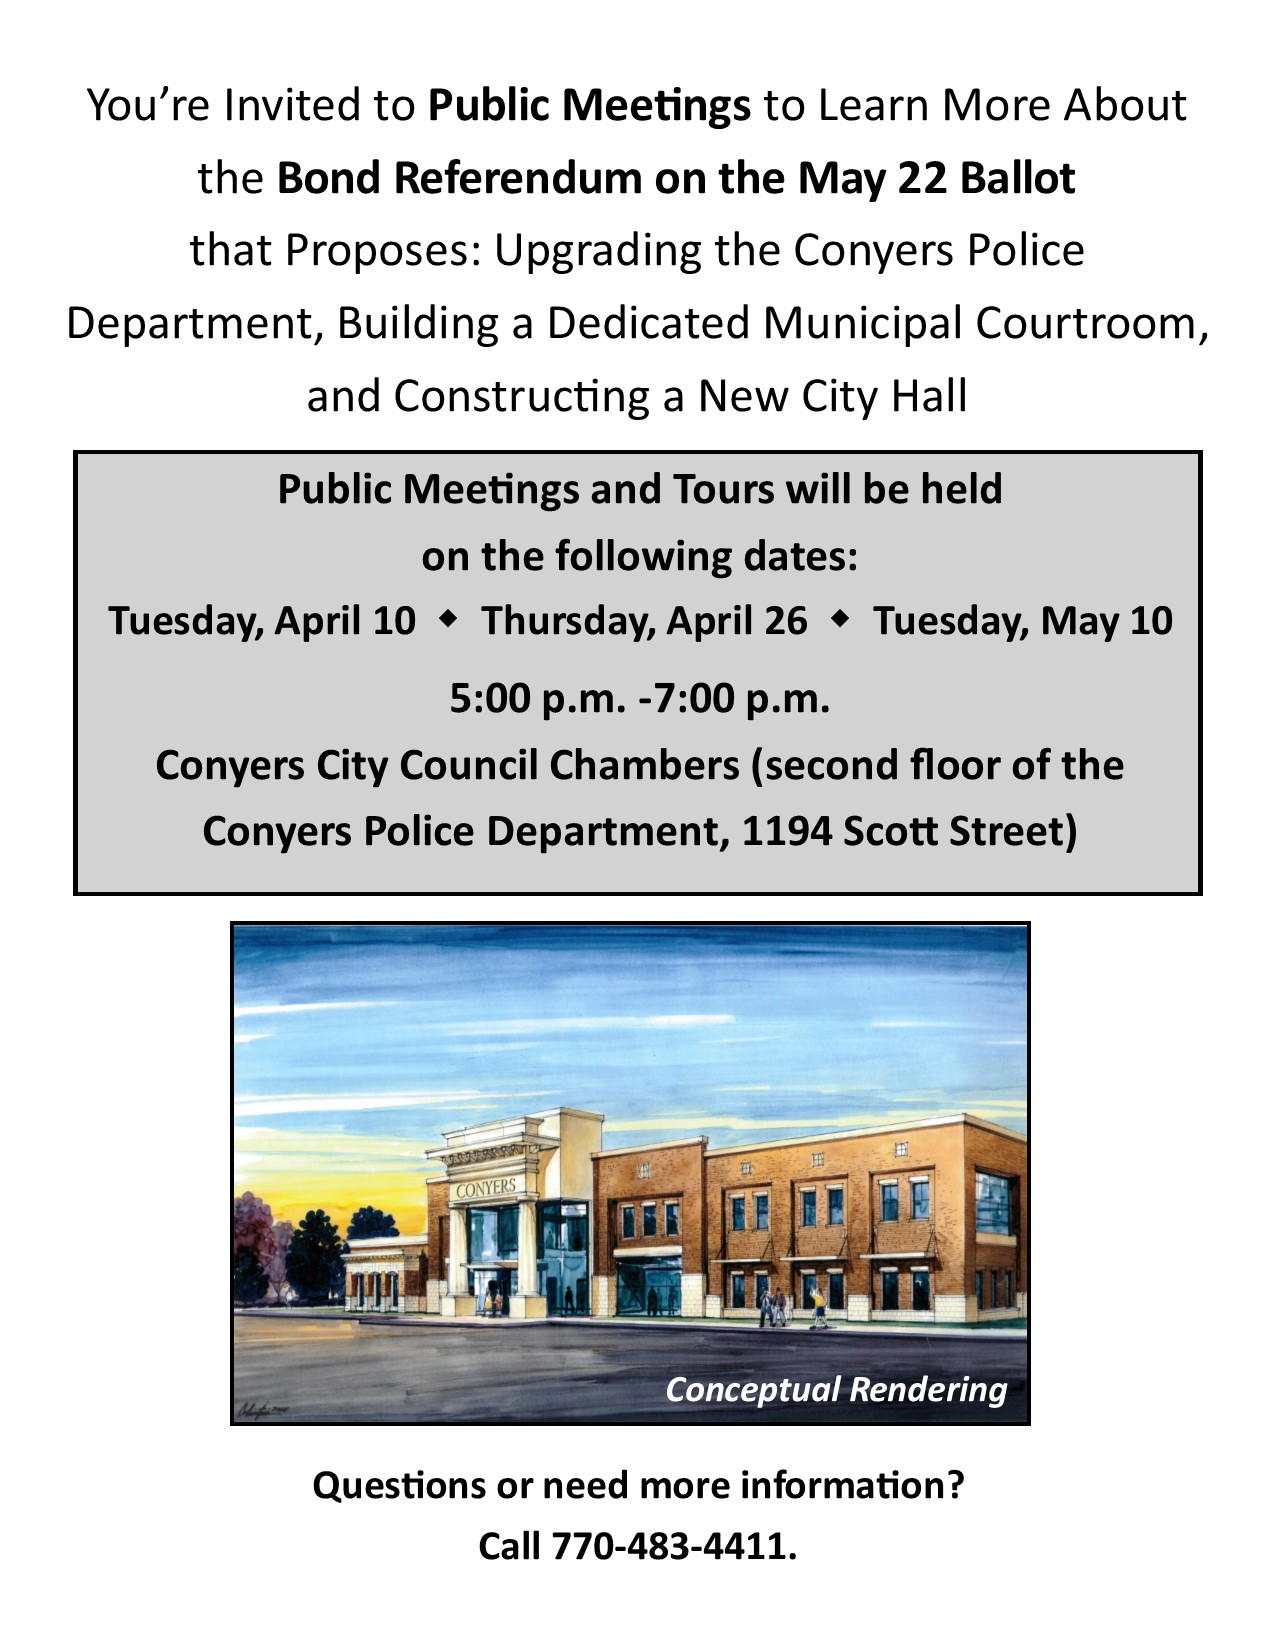 Public Meetings for May 22 Bond Referendum